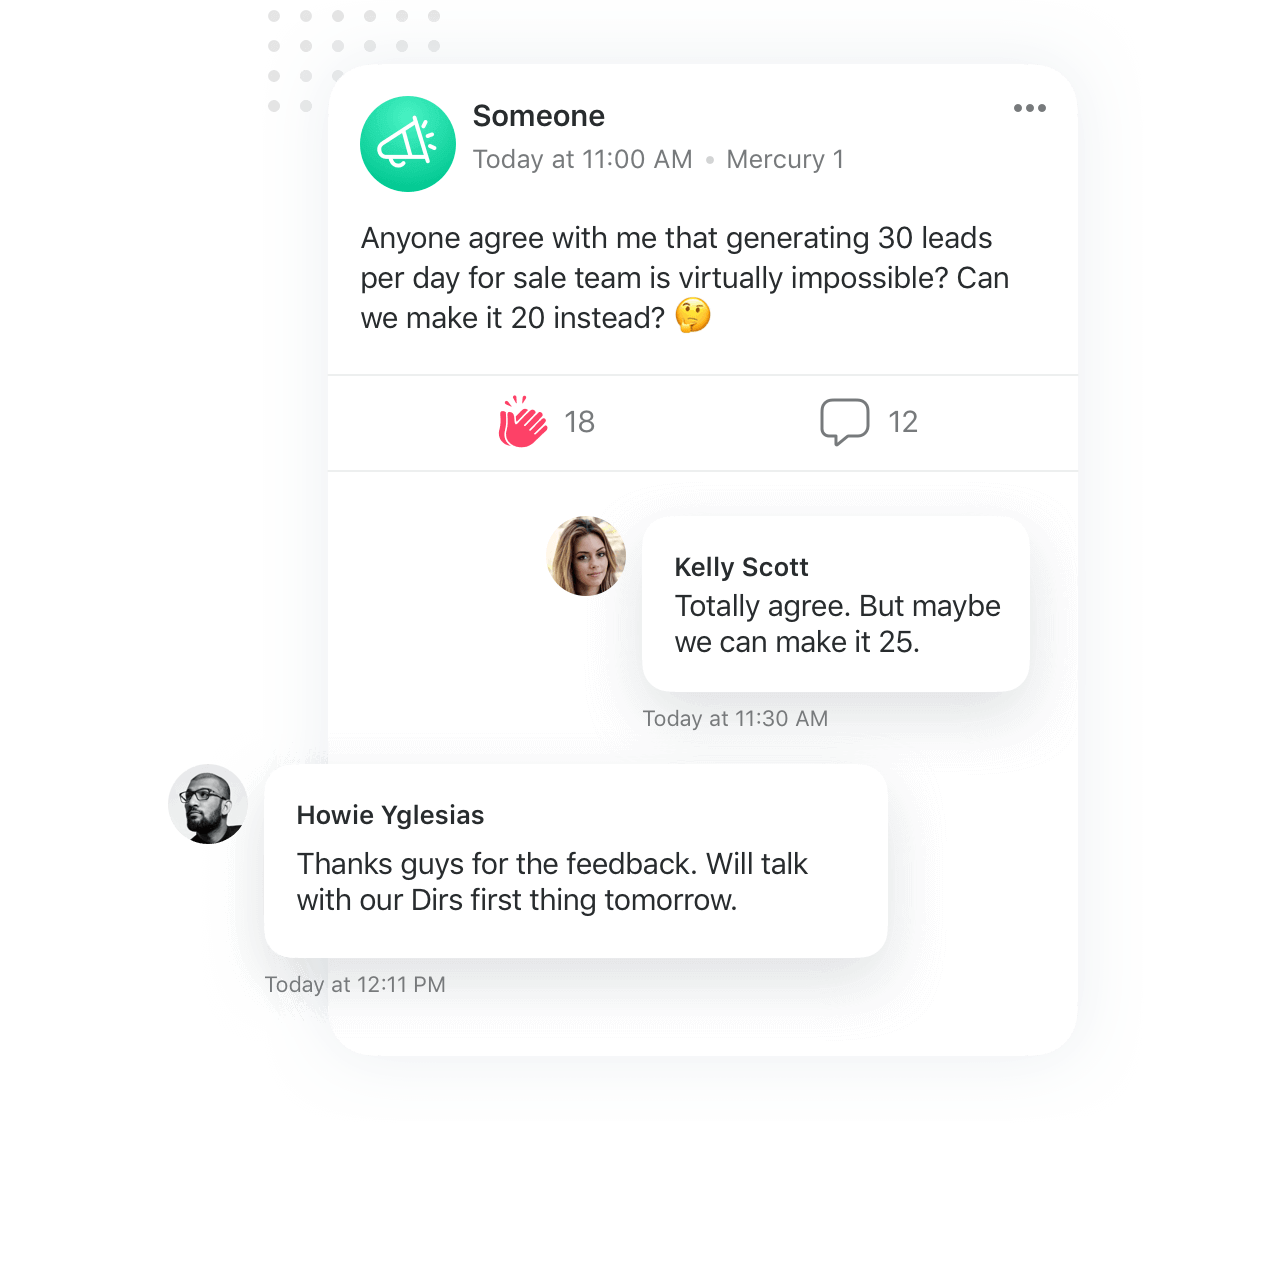 Share your opinion on the new KPIs with your team. Speak up and receive everyone's unfiltered comments.